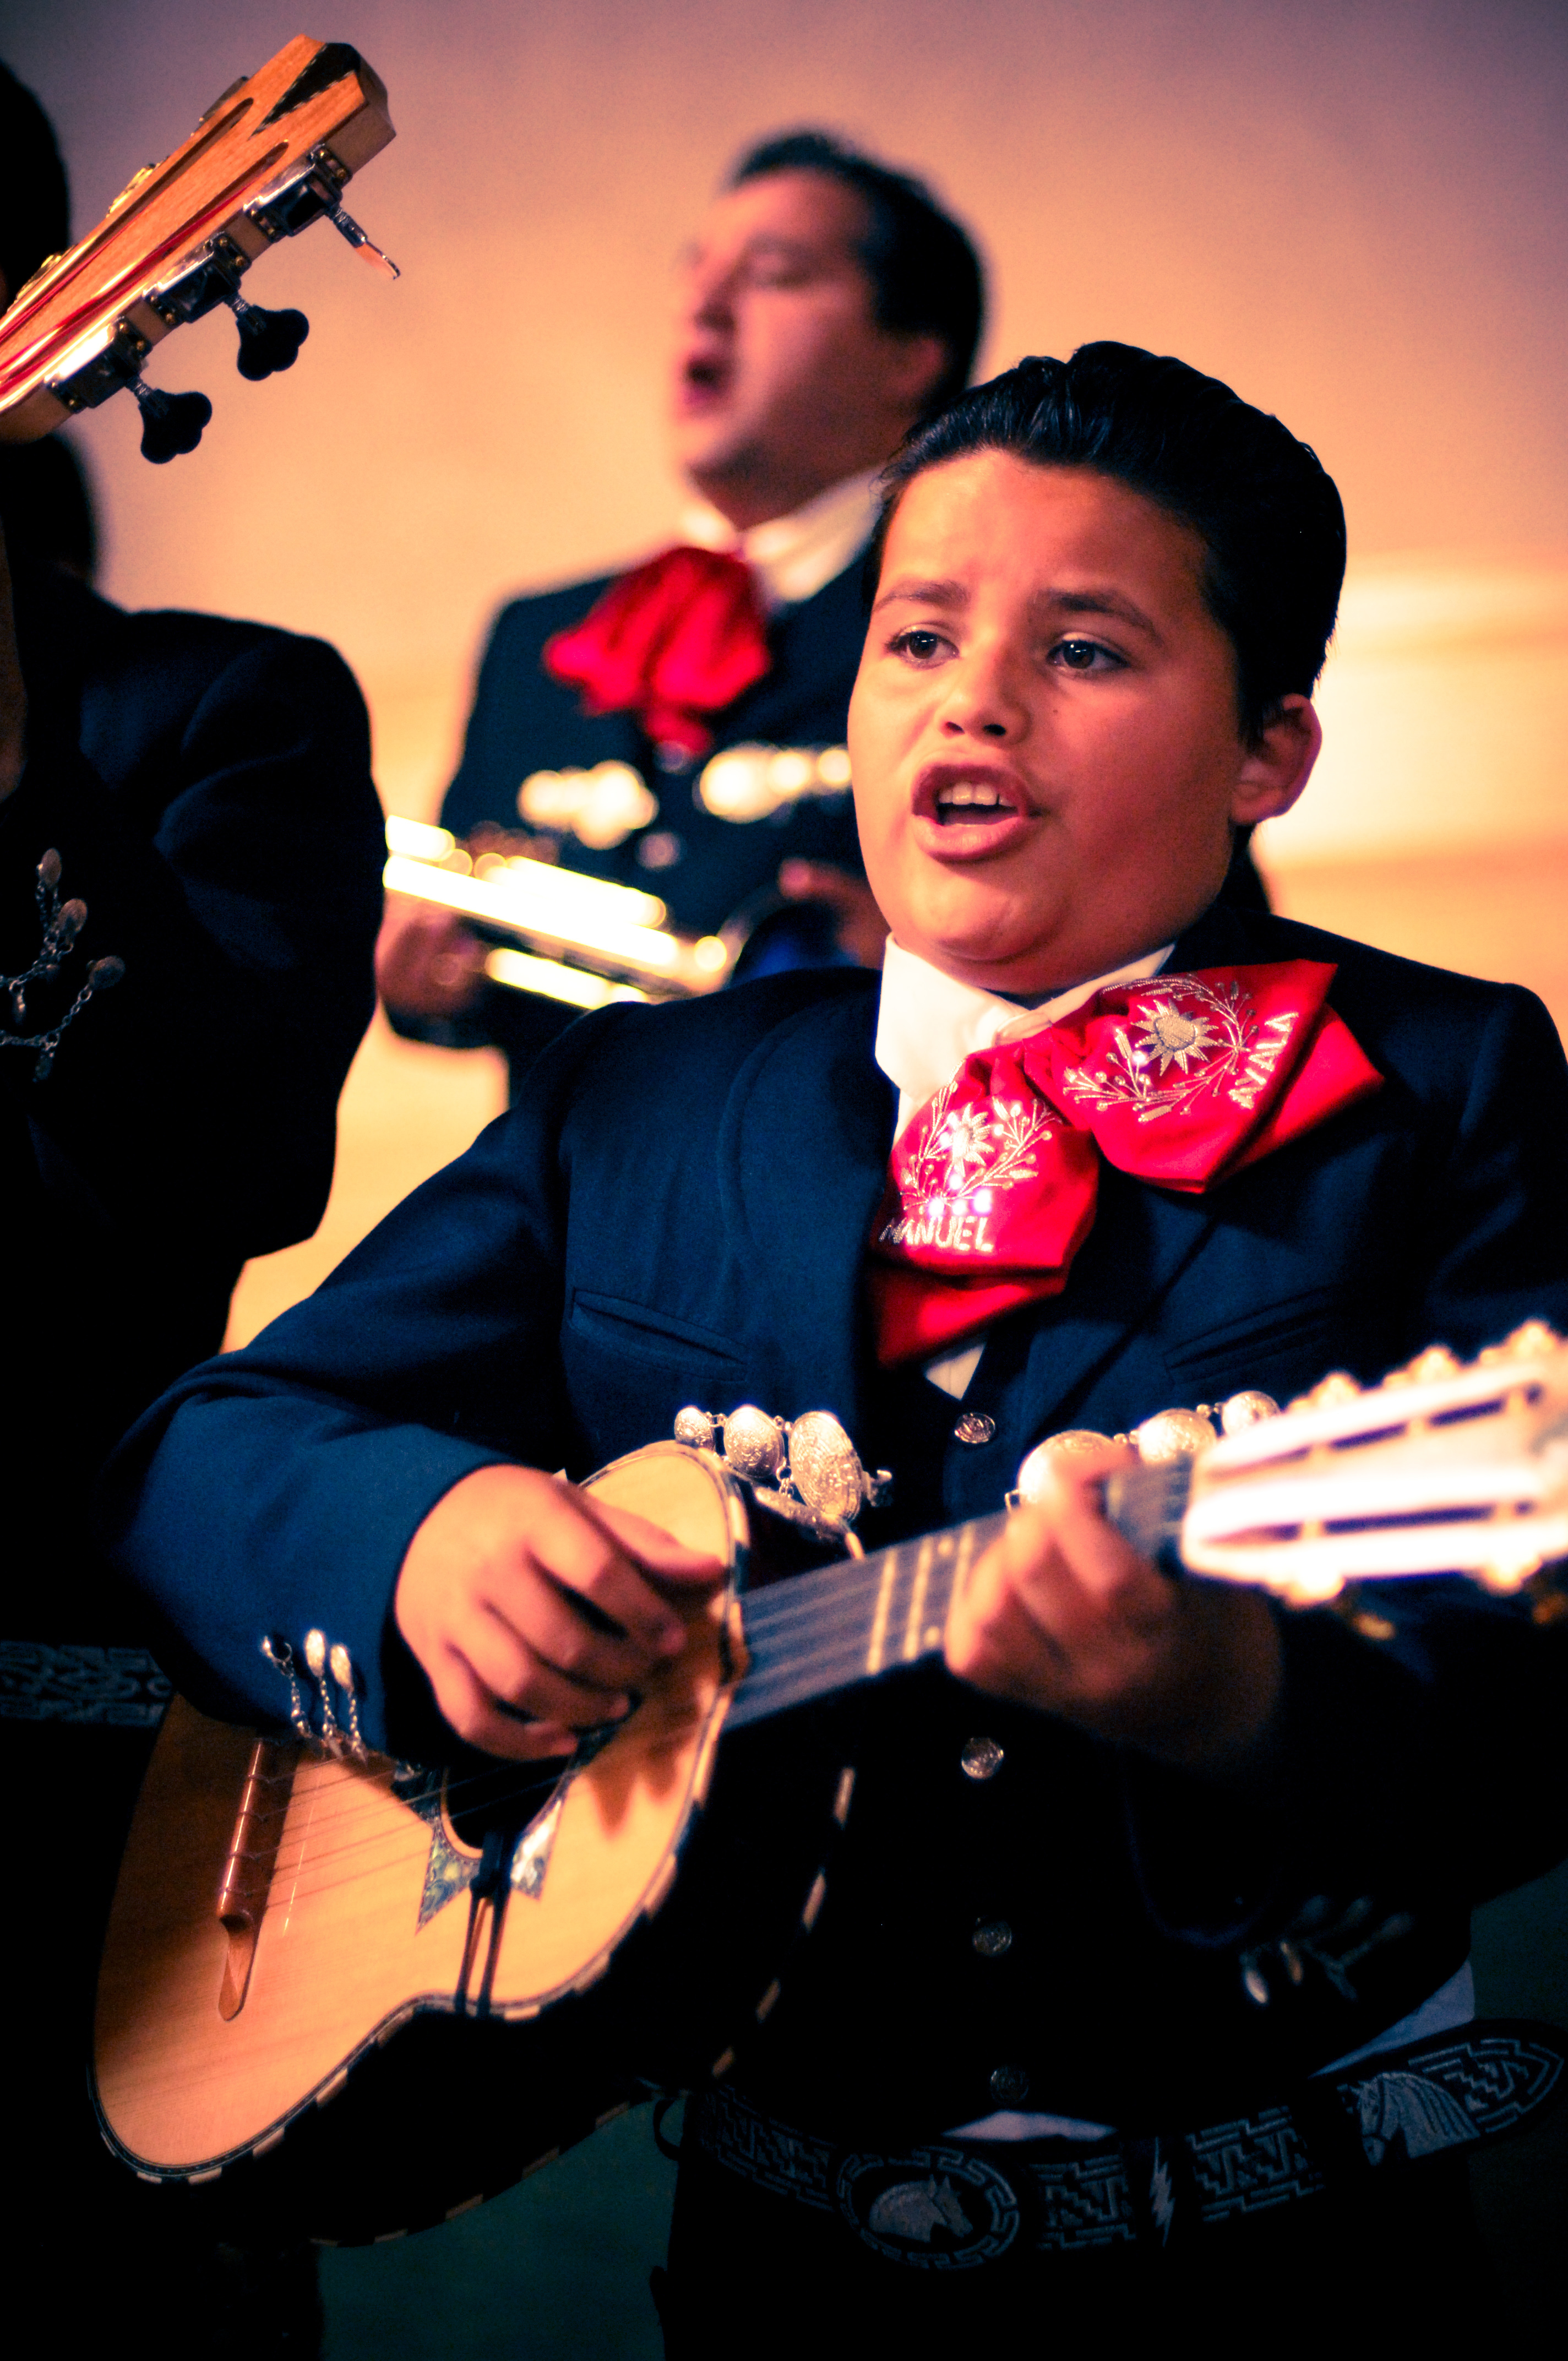 Entertainment, Wedding, Band, Mexican, Mariachi